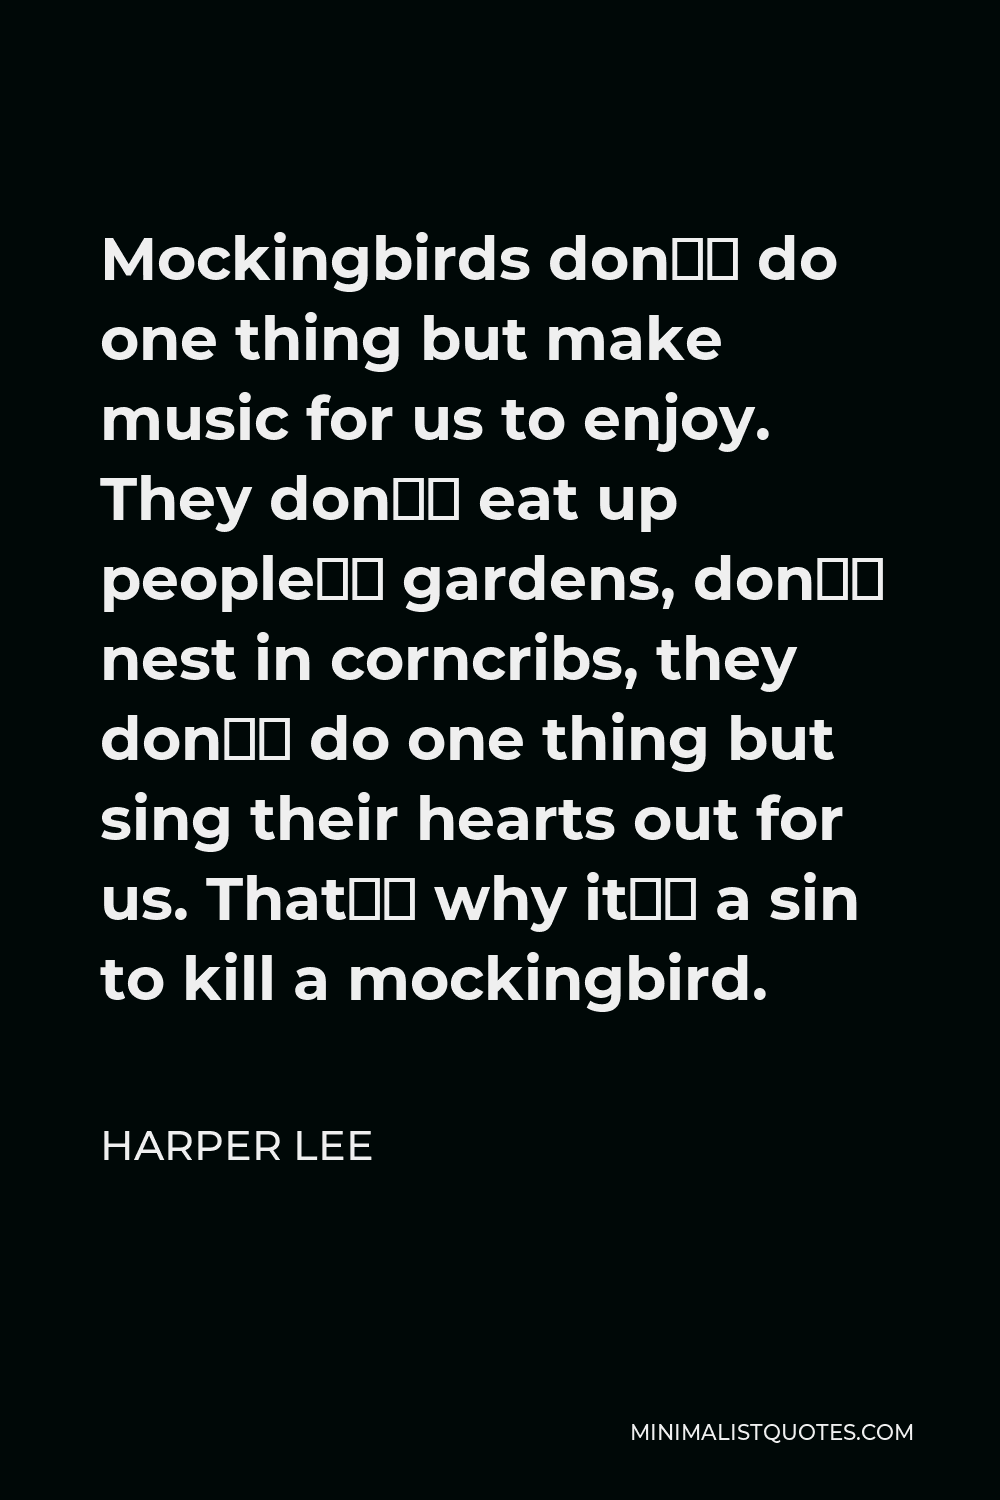 Harper Lee Quote - Mockingbirds don't do one thing but make music for us to enjoy. They don't eat up people's gardens, don't nest in corncribs, they don't do one thing but sing their hearts out for us. That's why it's a sin to kill a mockingbird.